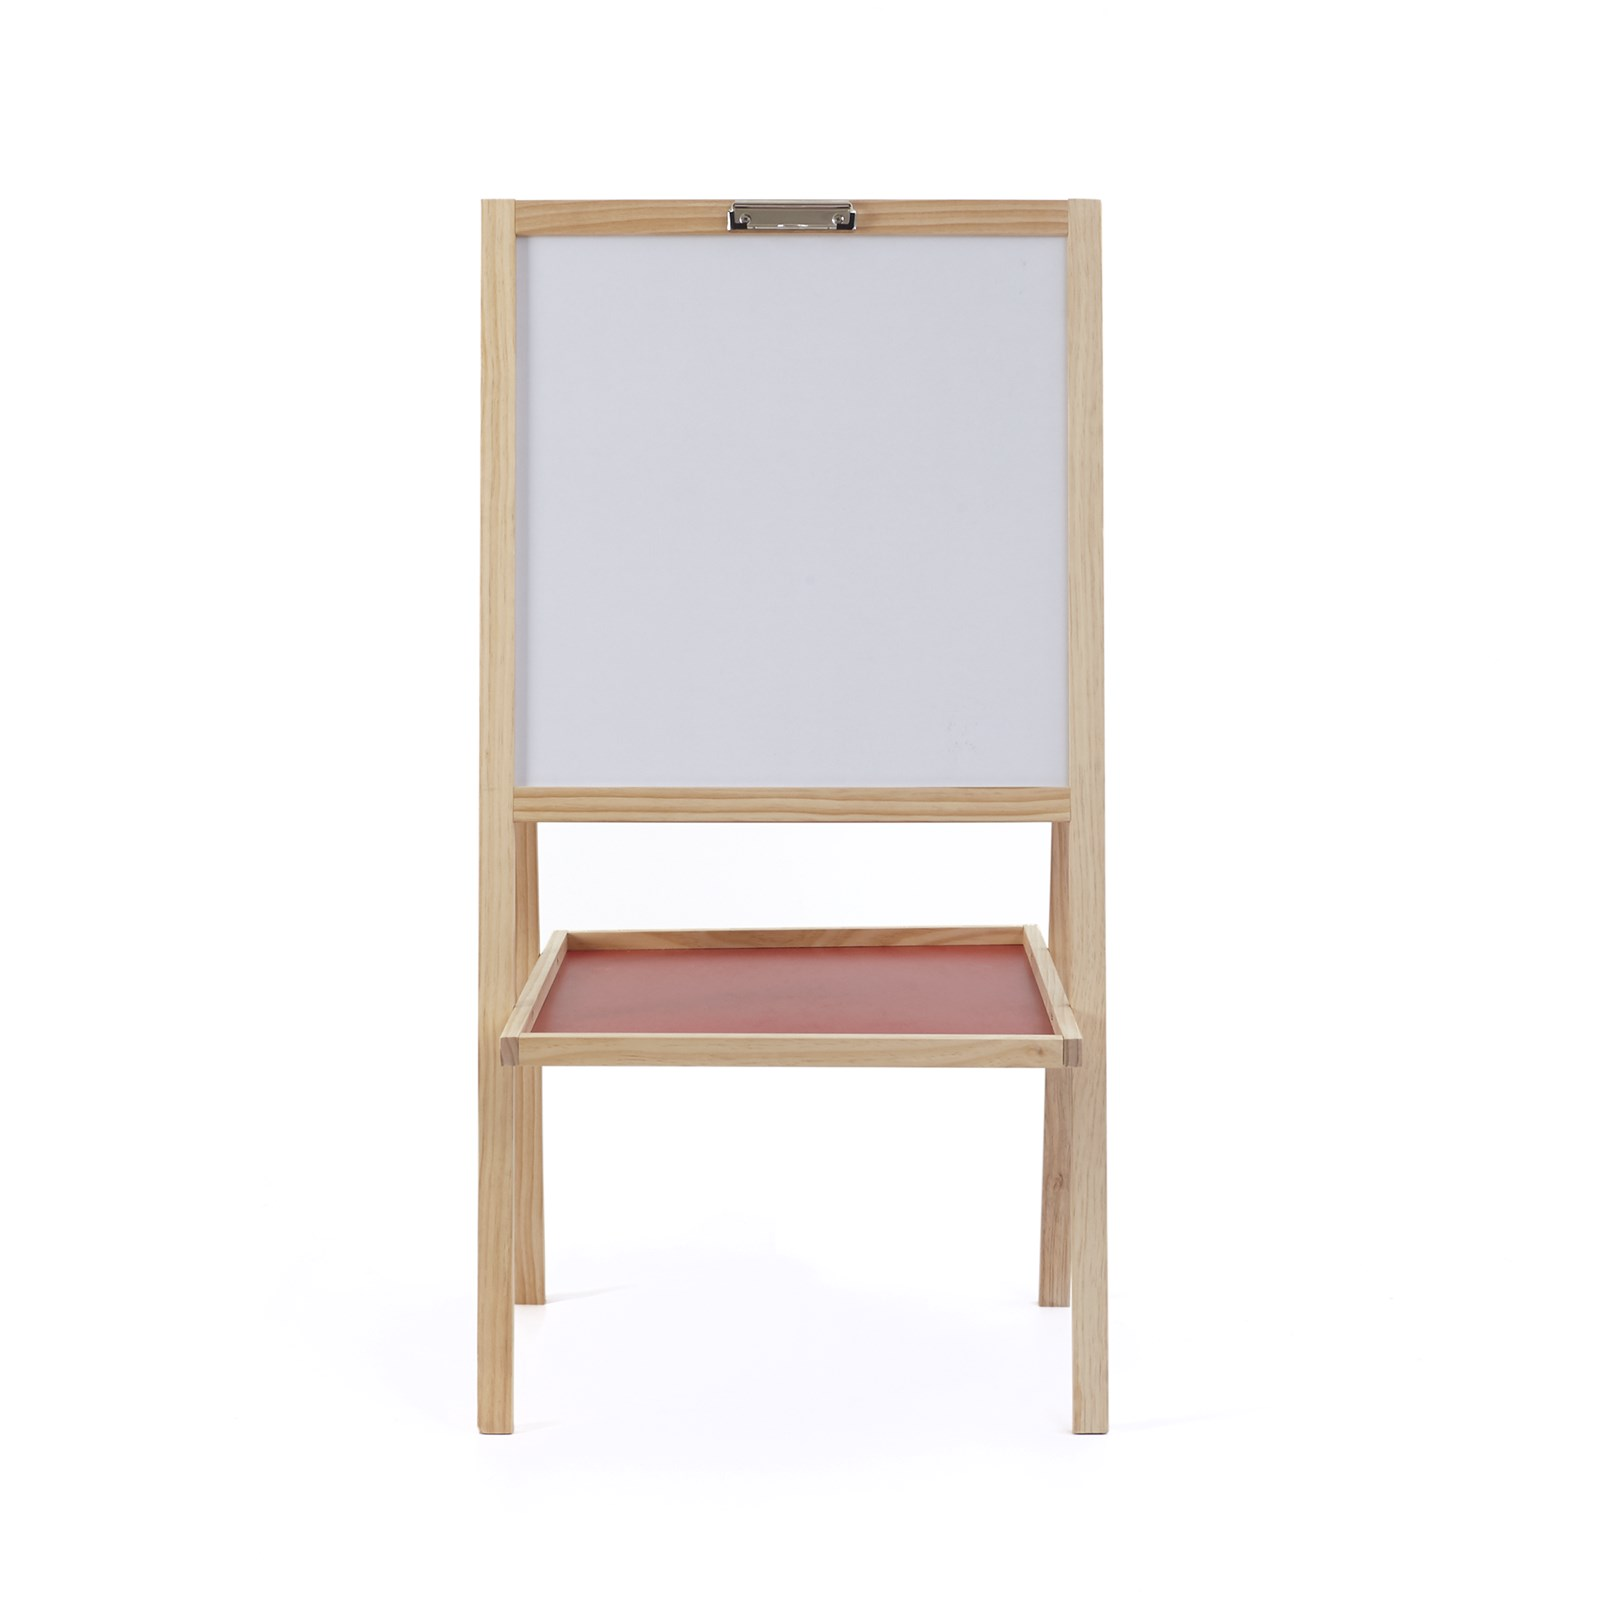 Classmates Two Sided Art Easel